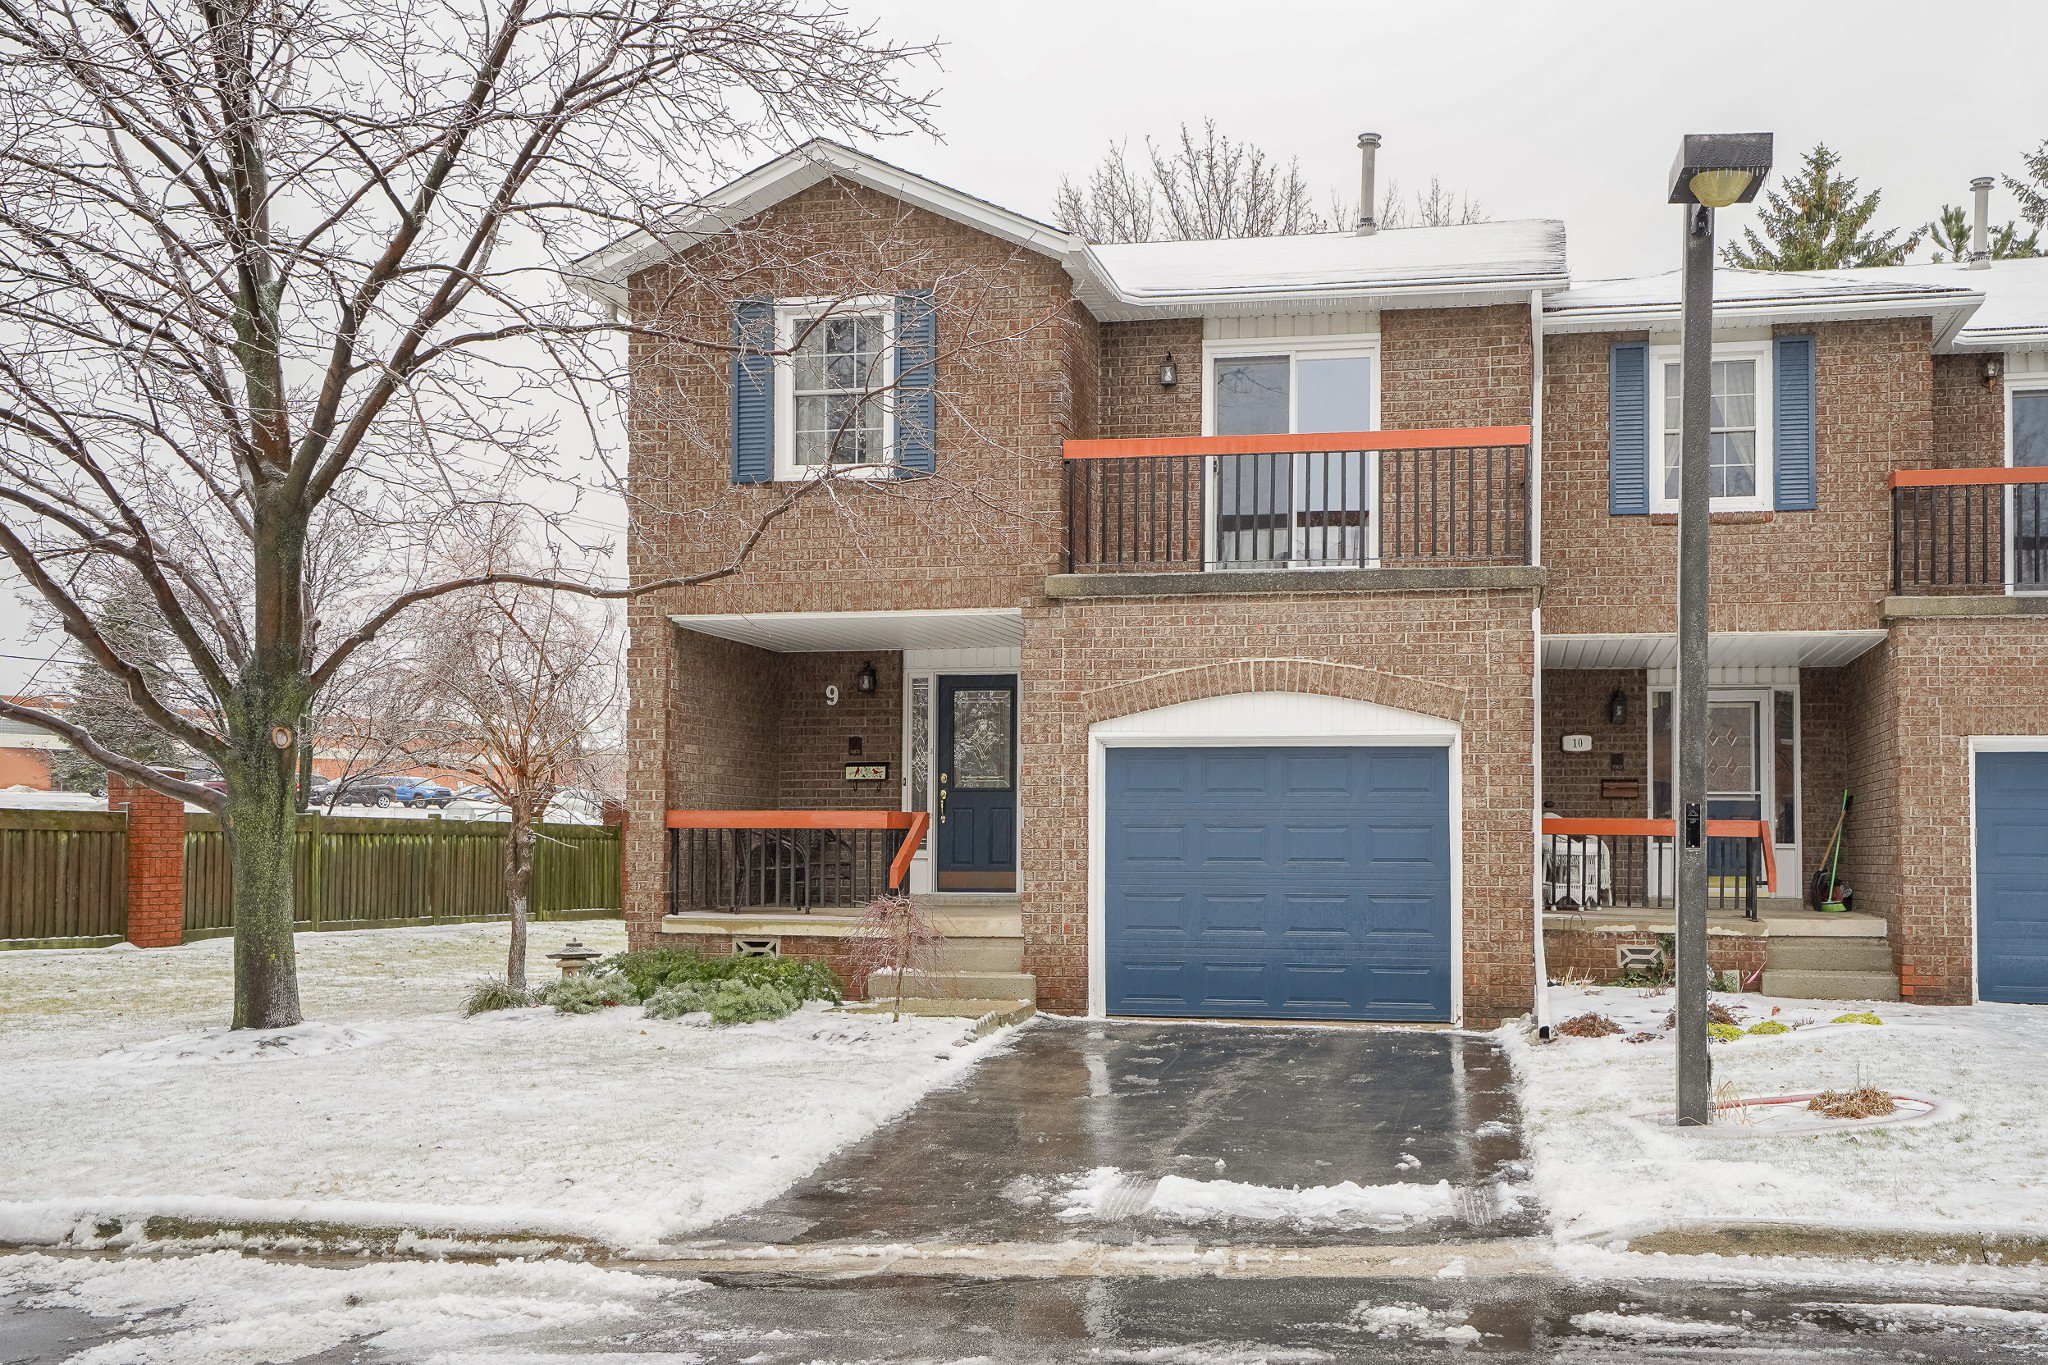 Main Photo: 9 1205 Lamb's Court in Burlington: House for sale : MLS®# H4046284